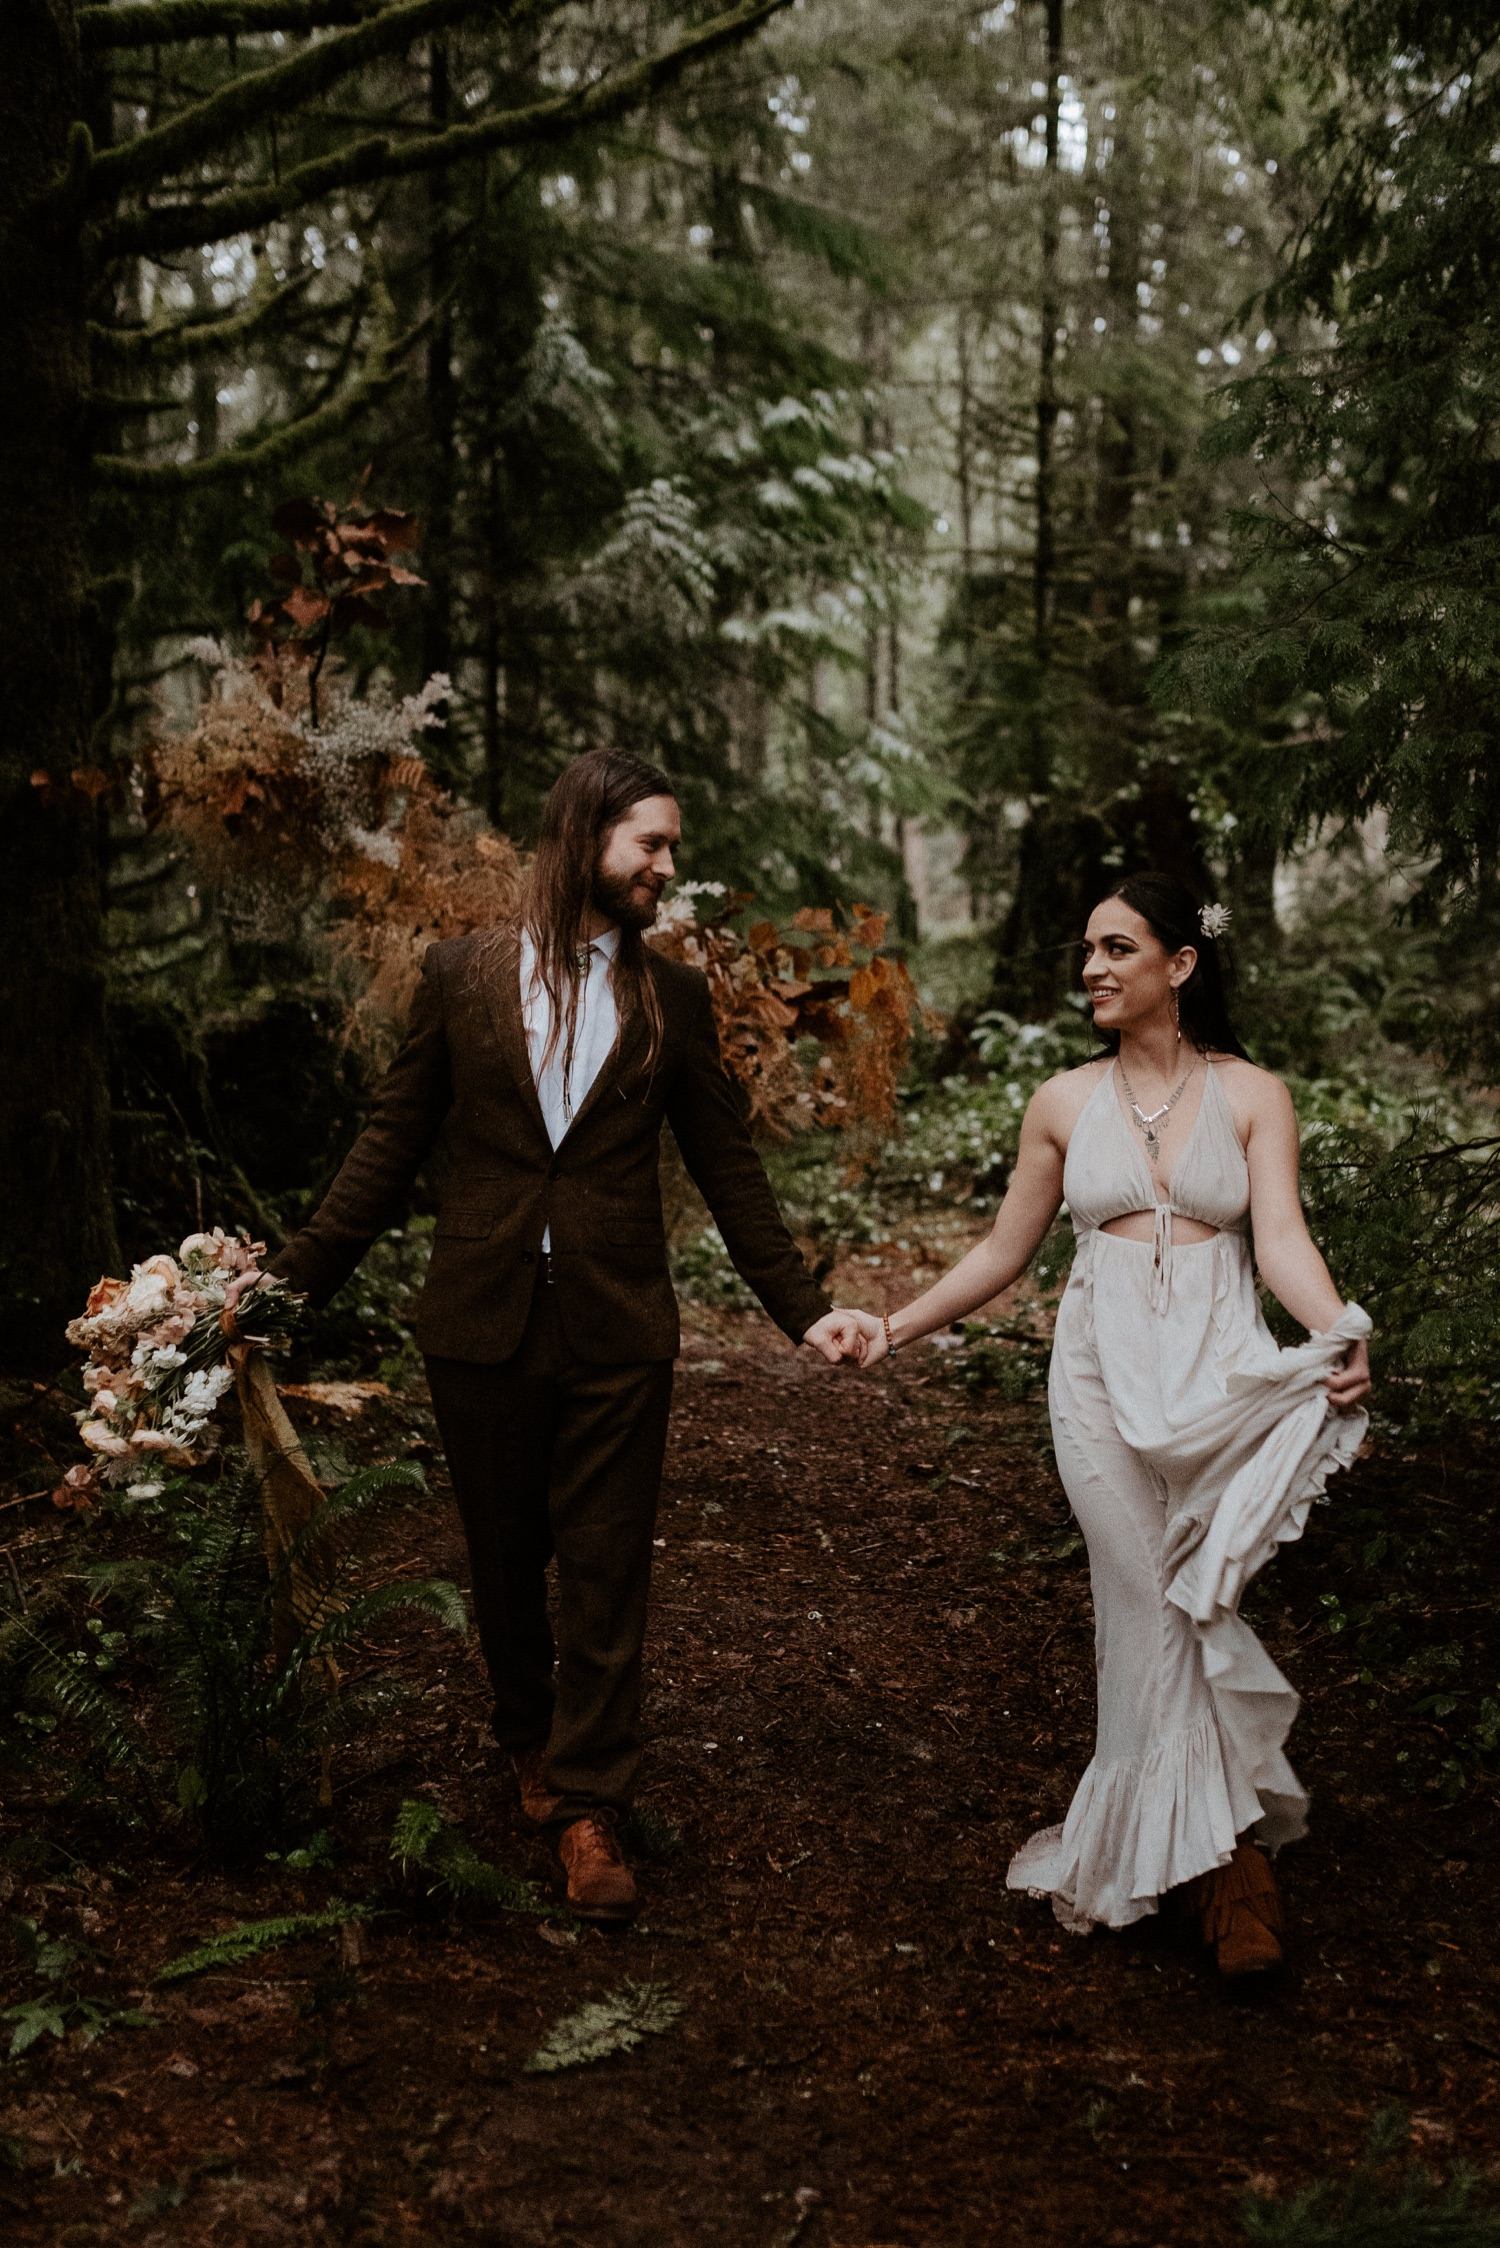 The Woodlands House Sandy Oregon Elopement Portland Elopement Photographer PNW Adventurous Elopement Anais Possamai Photography 027